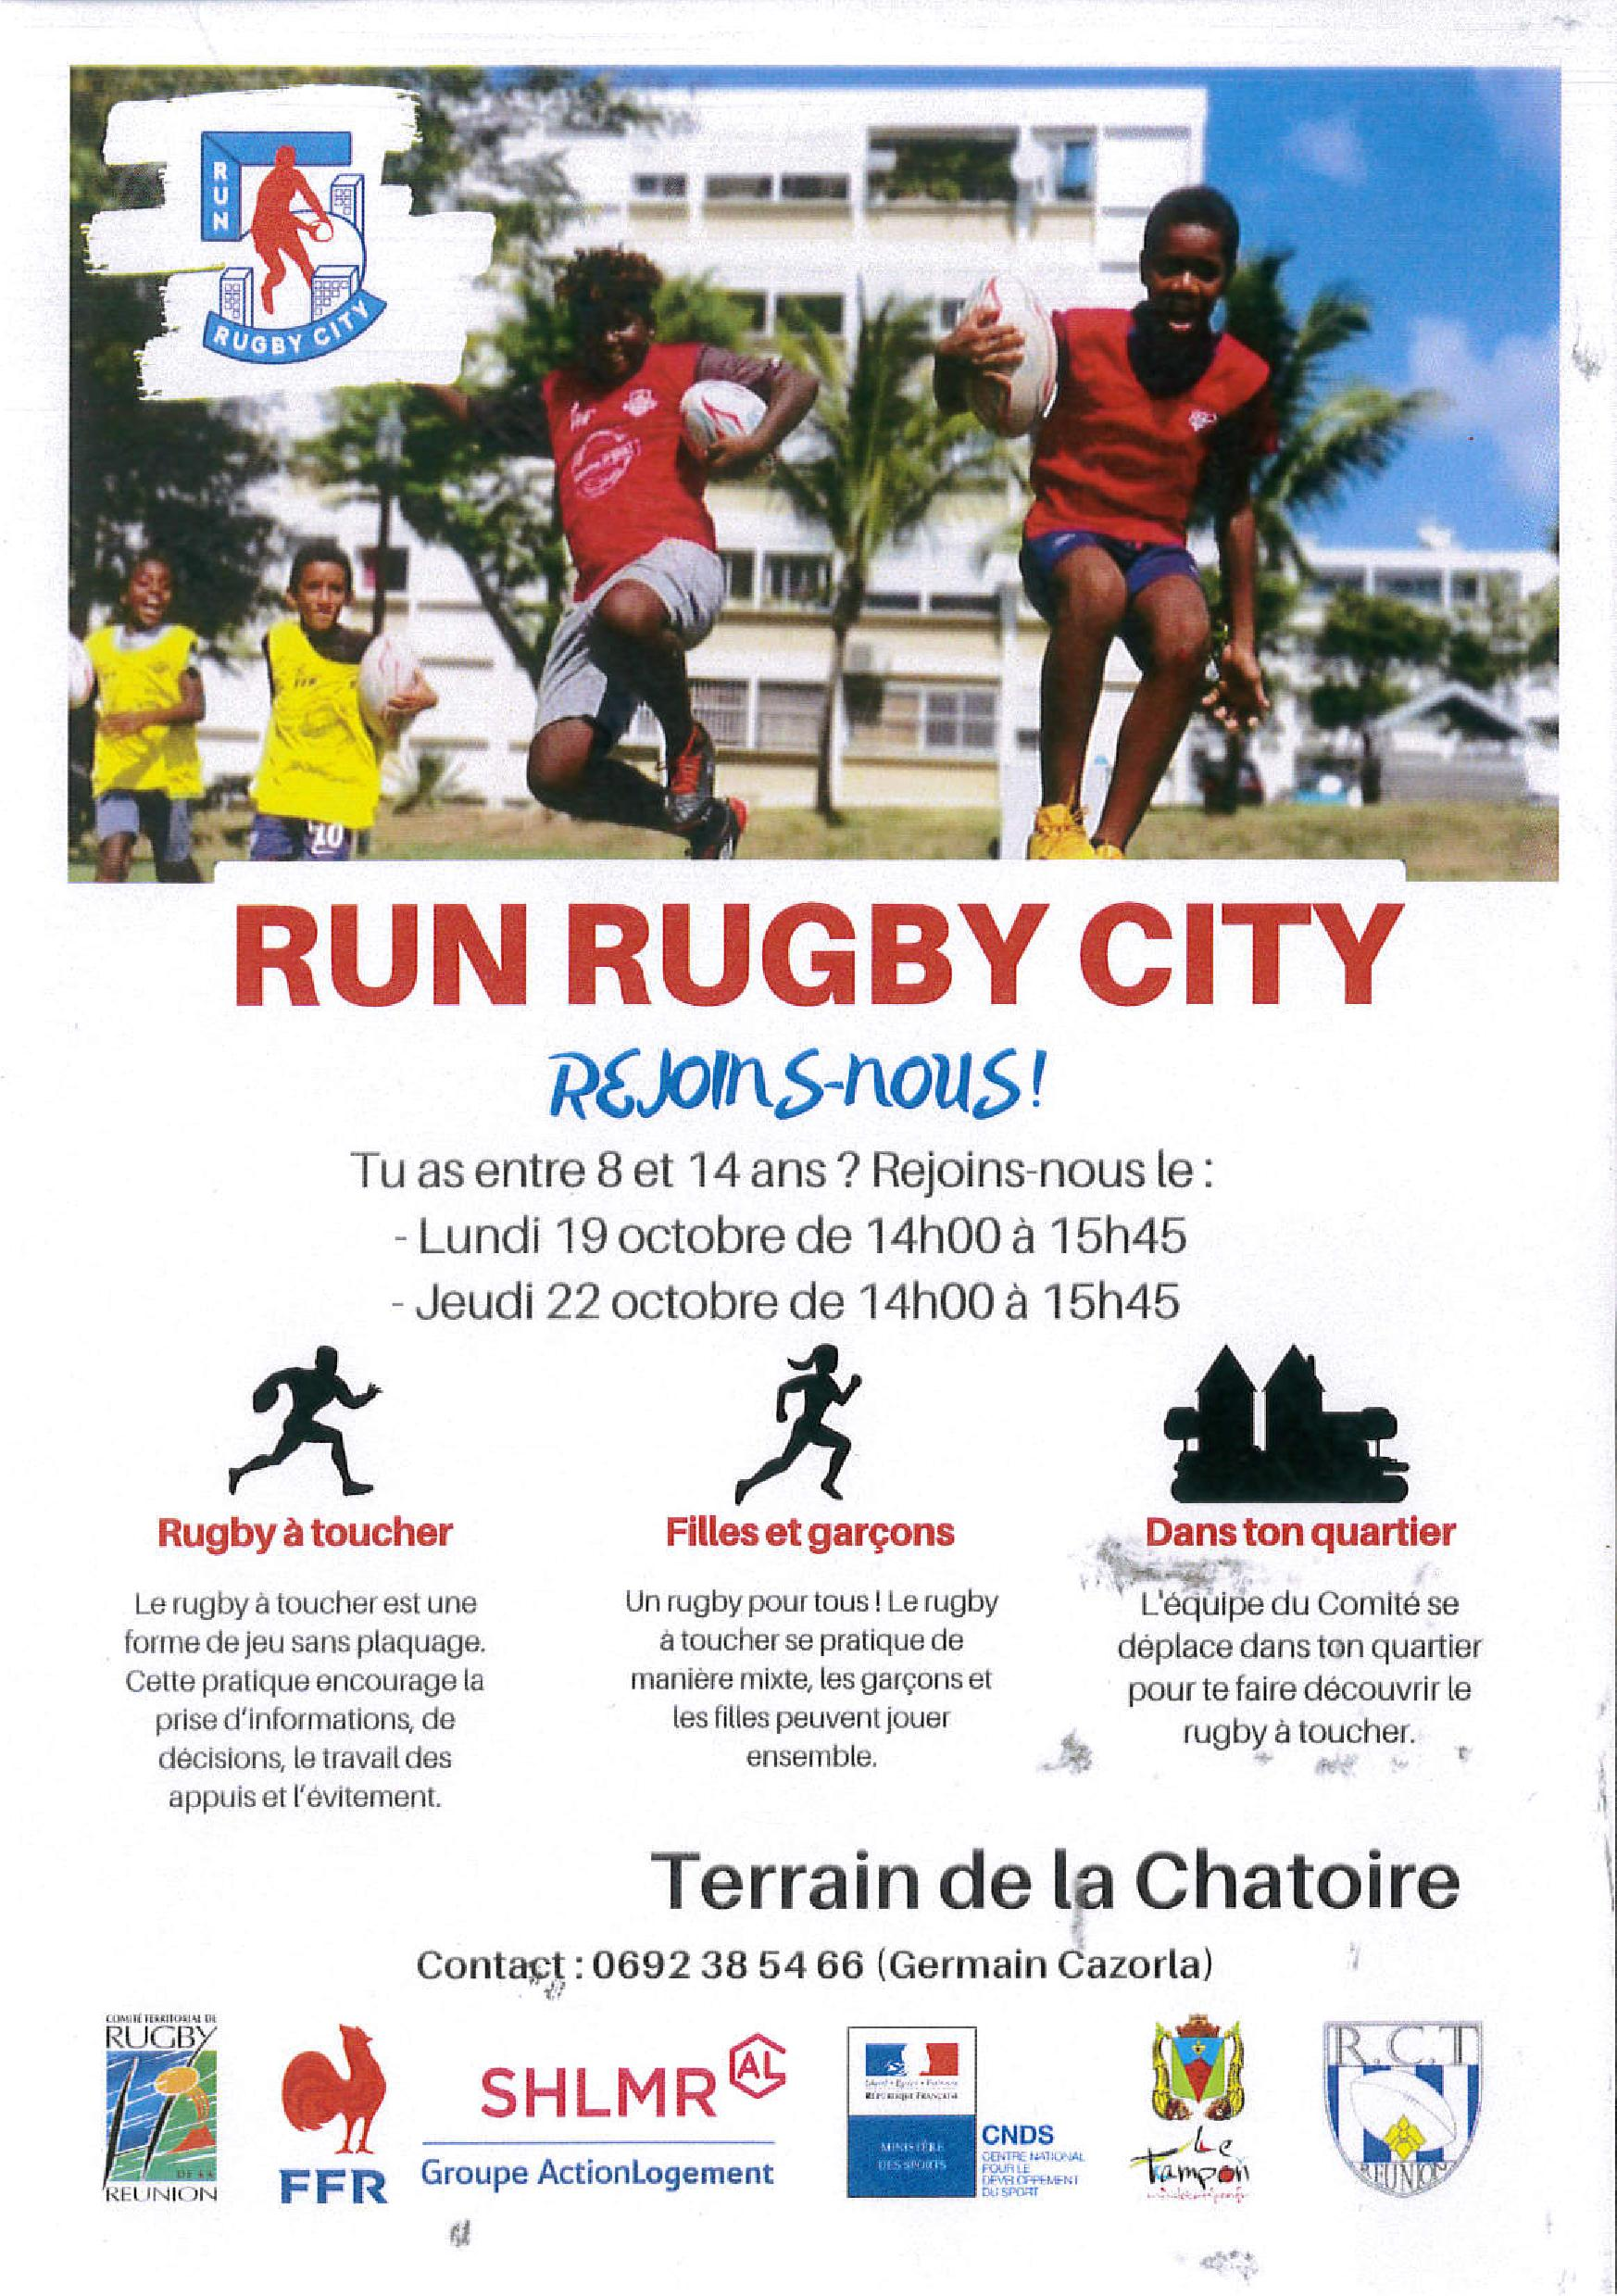 RUN RUGBY CITY CHATOIRE